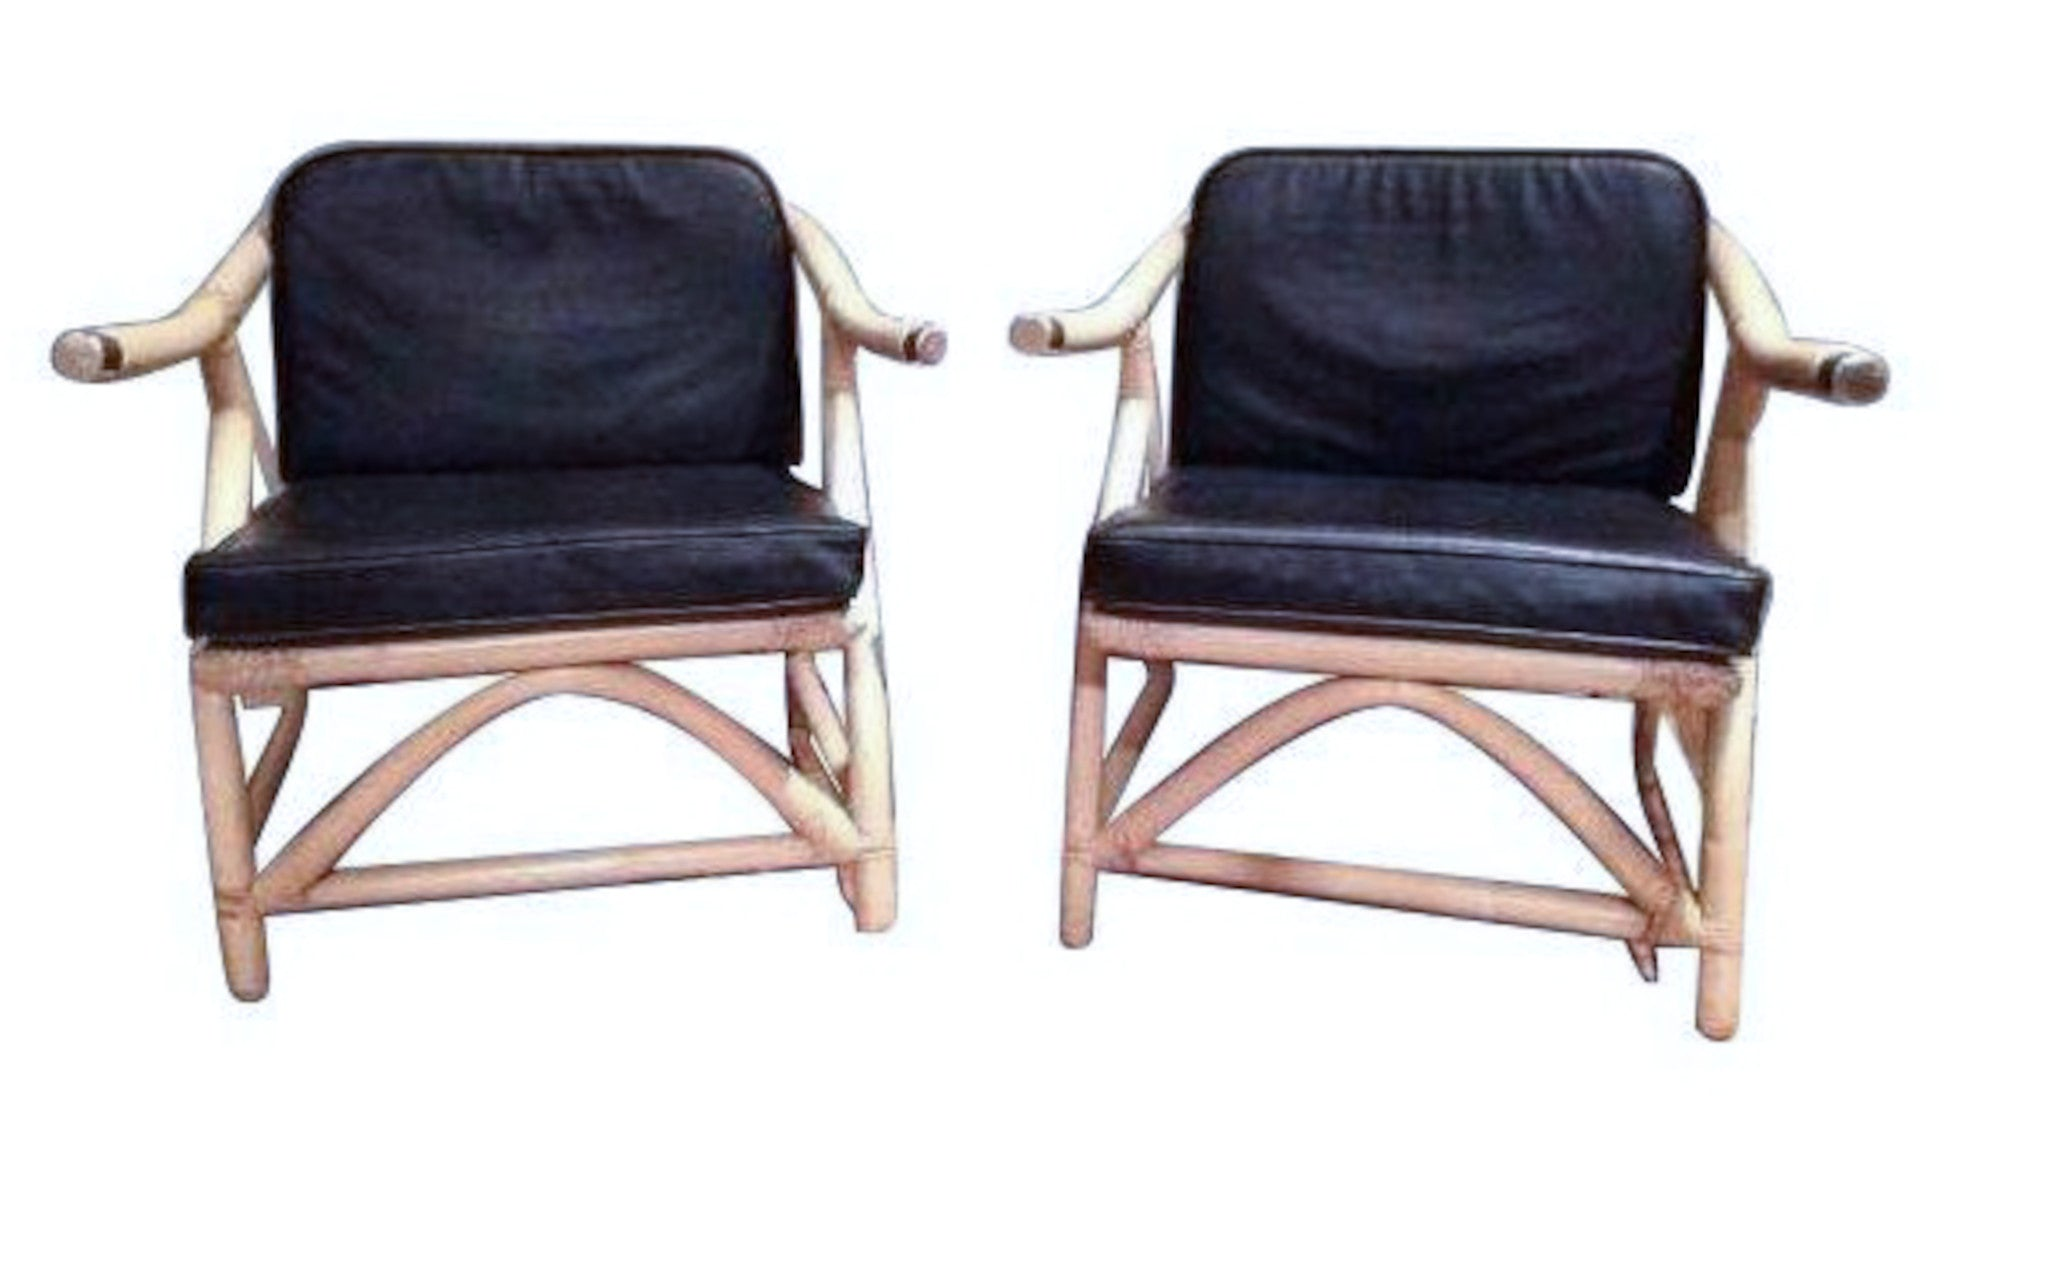 Mid Century Ivory Rattan Chairs, black leather cushions